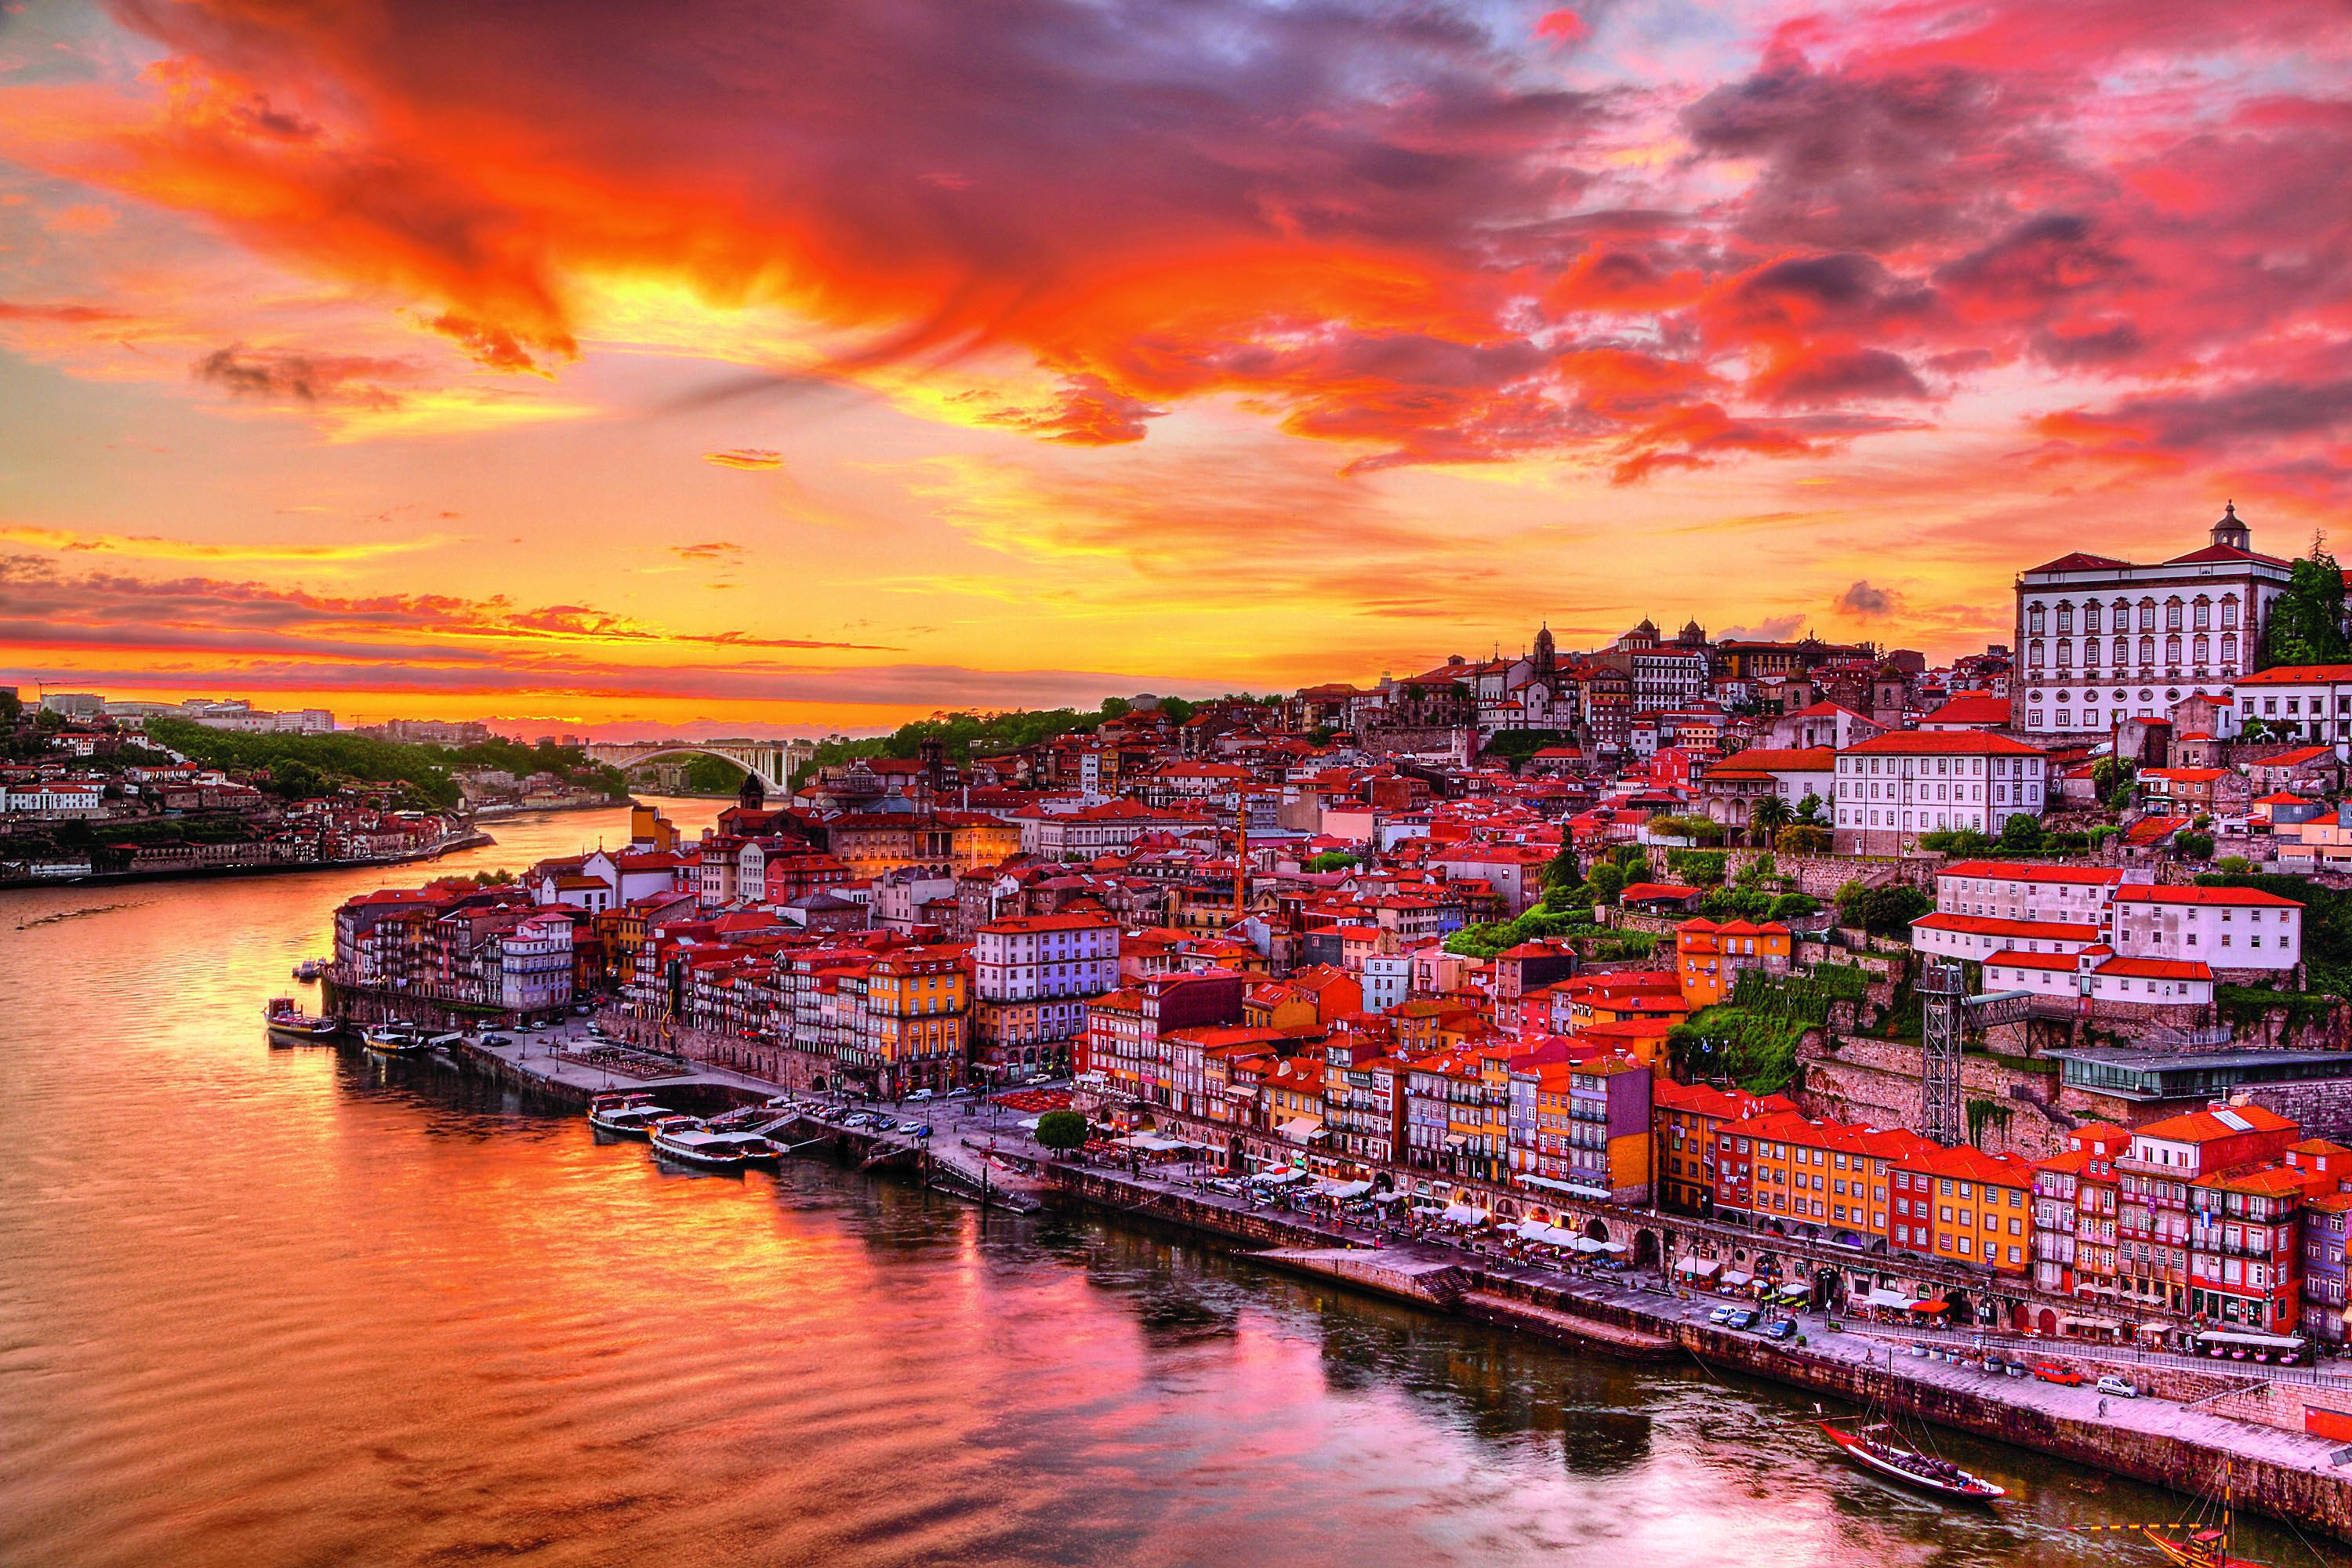 Porto wallpapers backgrounds for Belle image hd